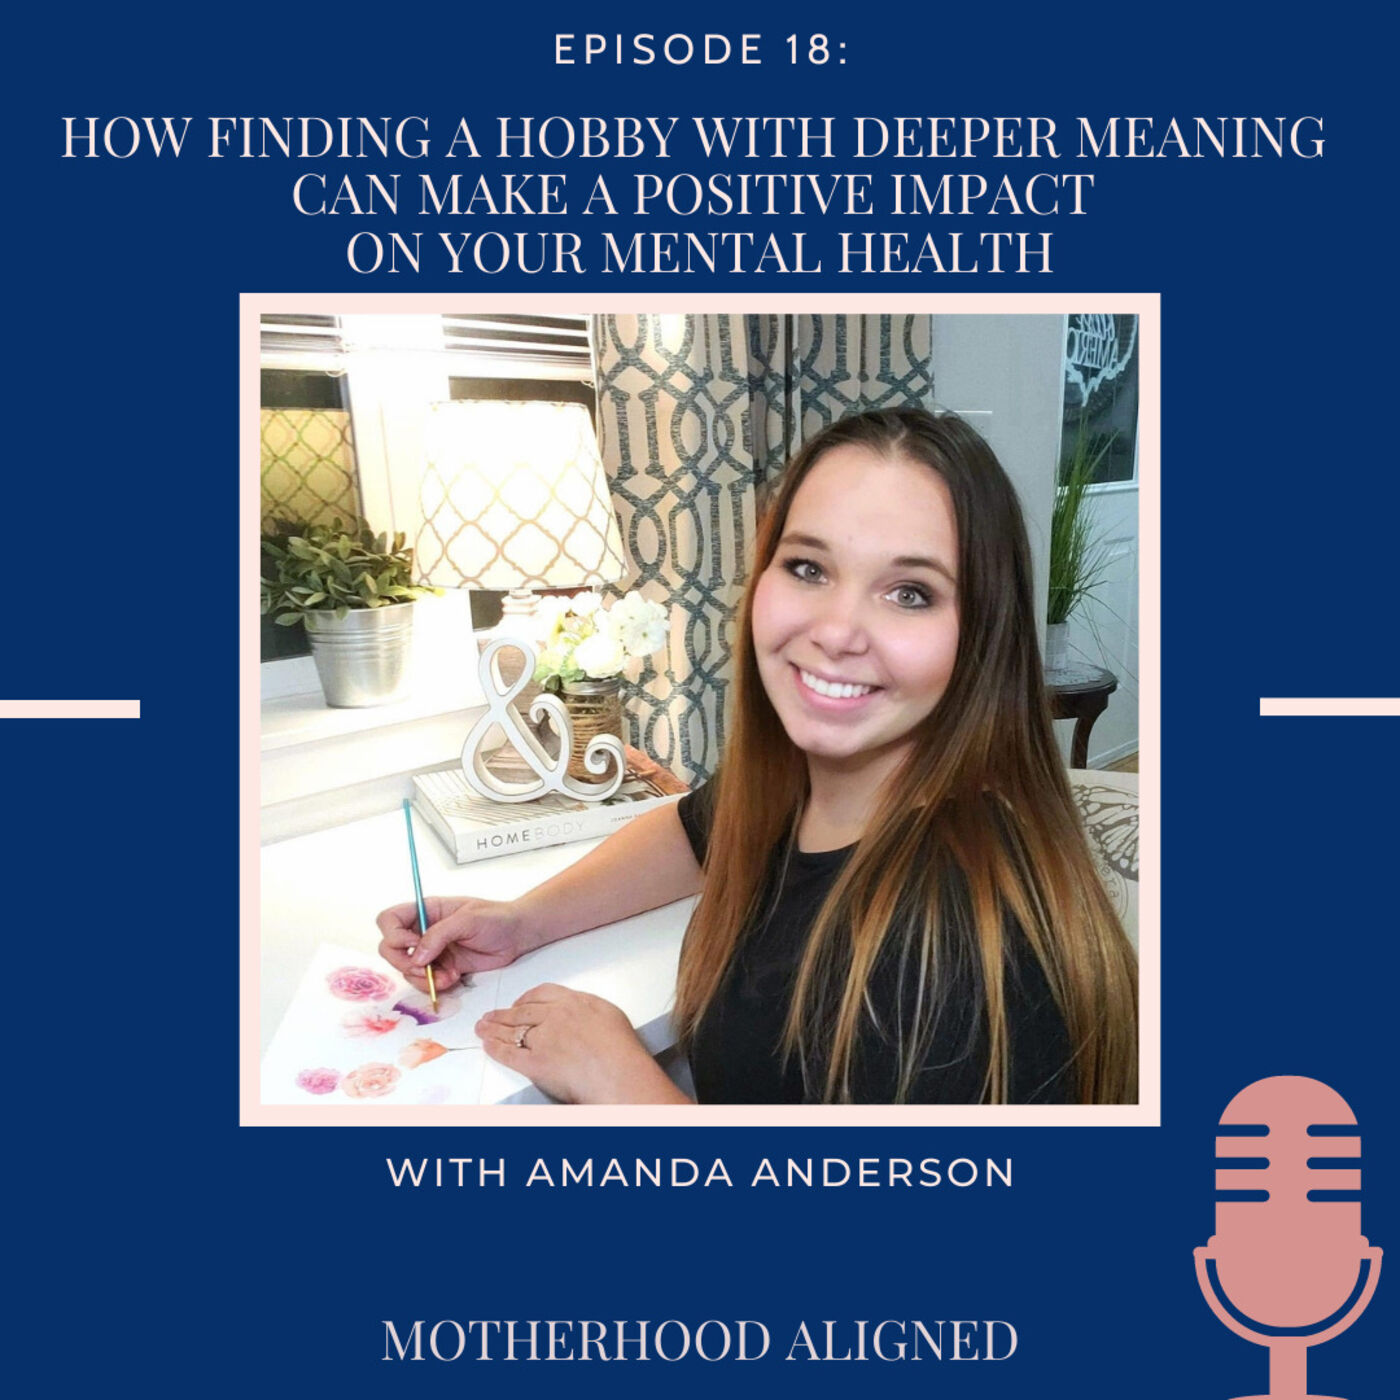 How Finding a Hobby with Deeper Meaning Makes a Positive Impact on your Mental Health with Amanda Anderson, Sketched and Sealed